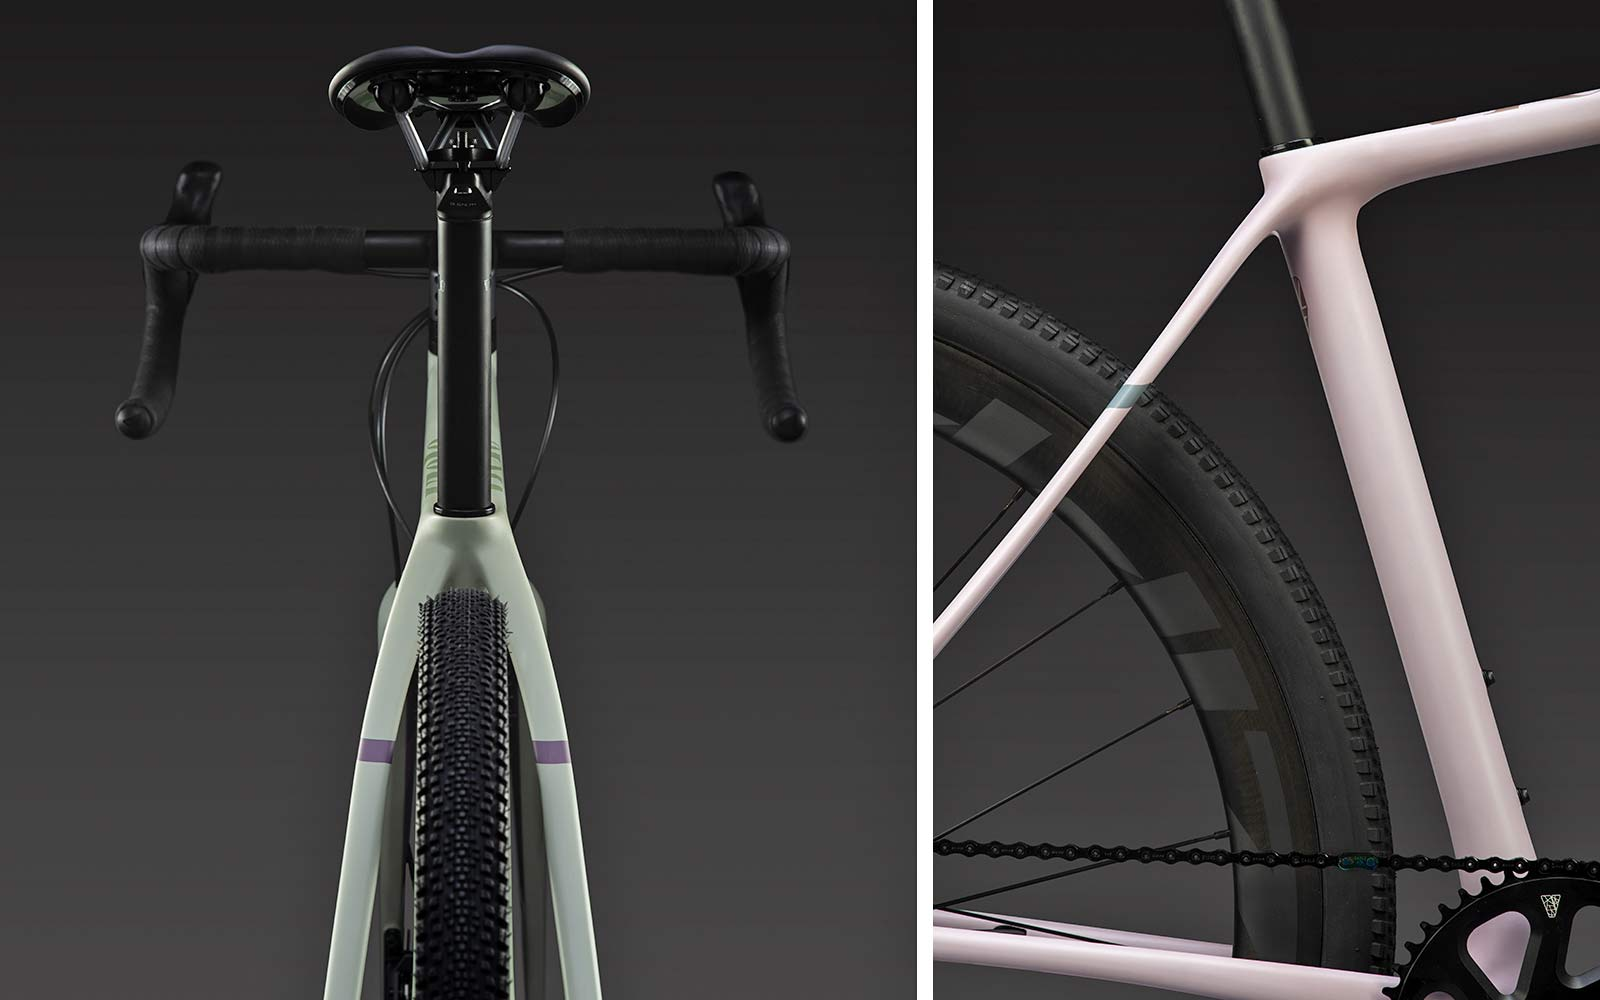 Vielo V+1 gravel bike, updated gen2 lightweight carbon fast gravel race bikes, rear end details